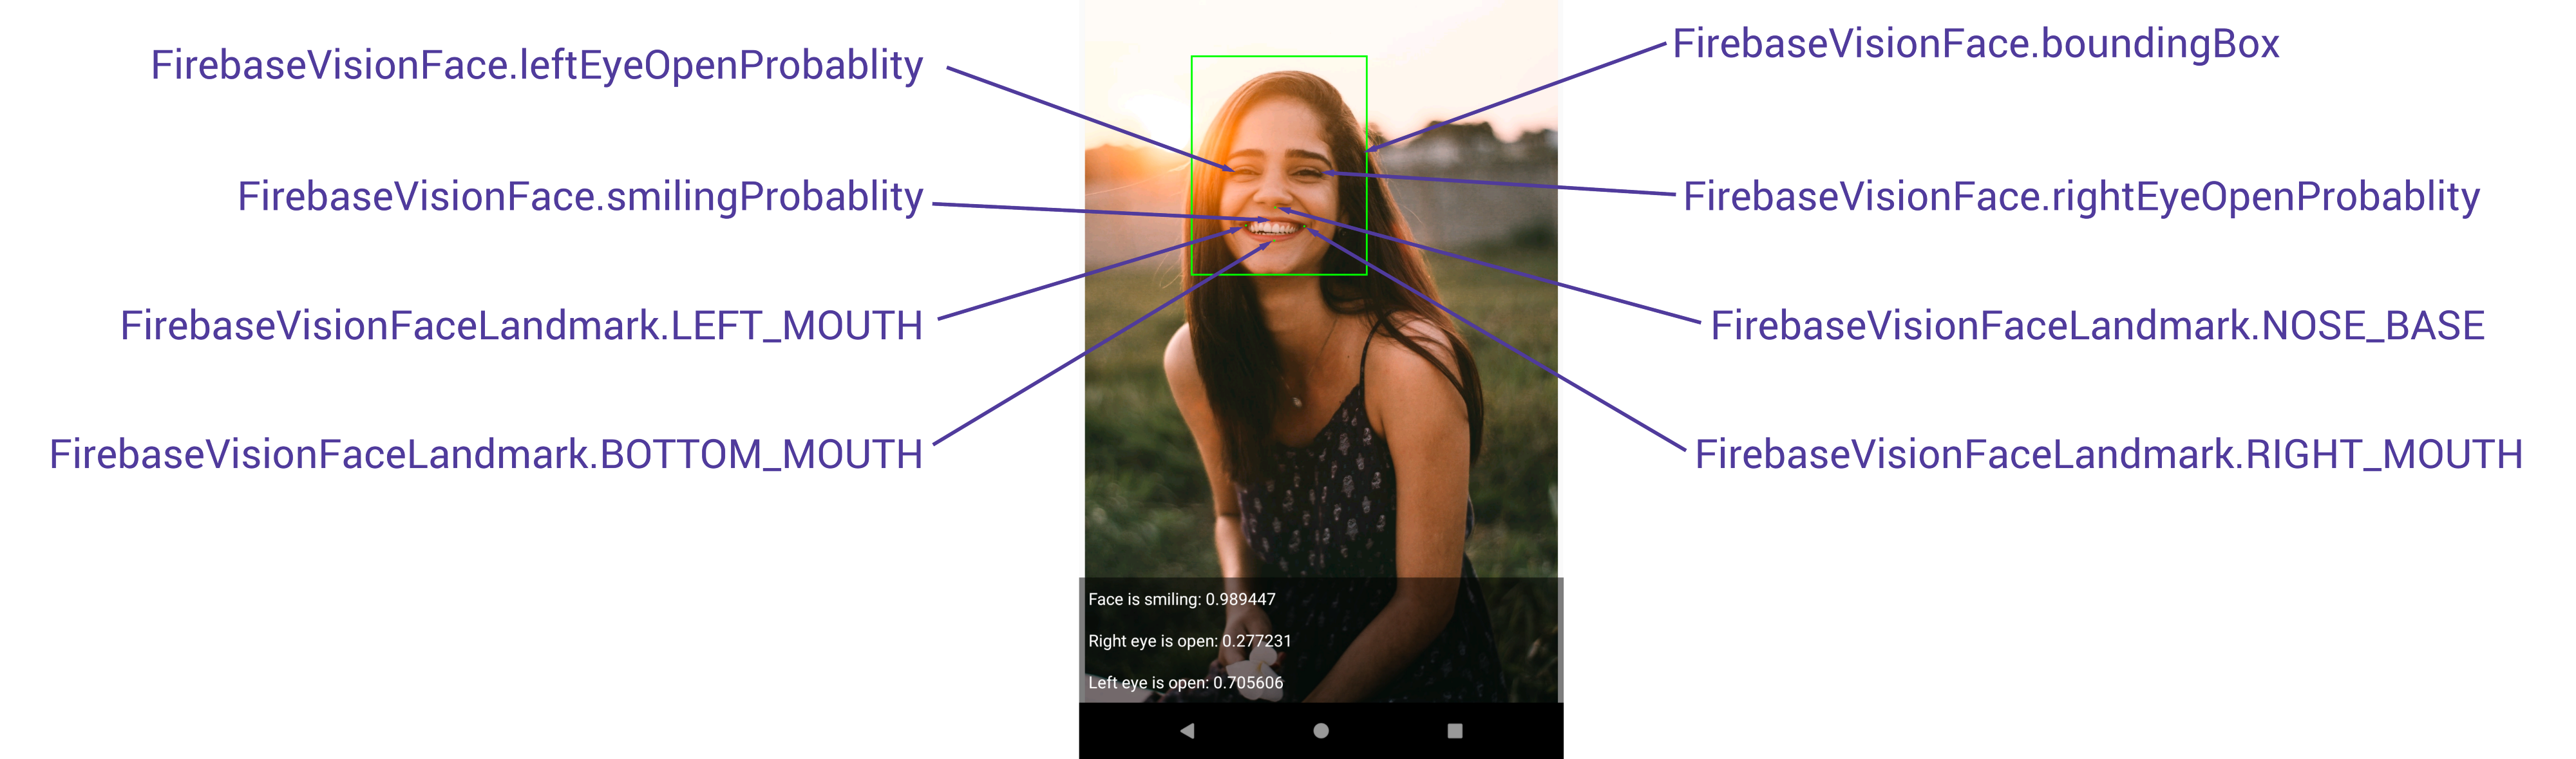 Exploring Firebase MLKit on Android: Face Detection (Part Two)